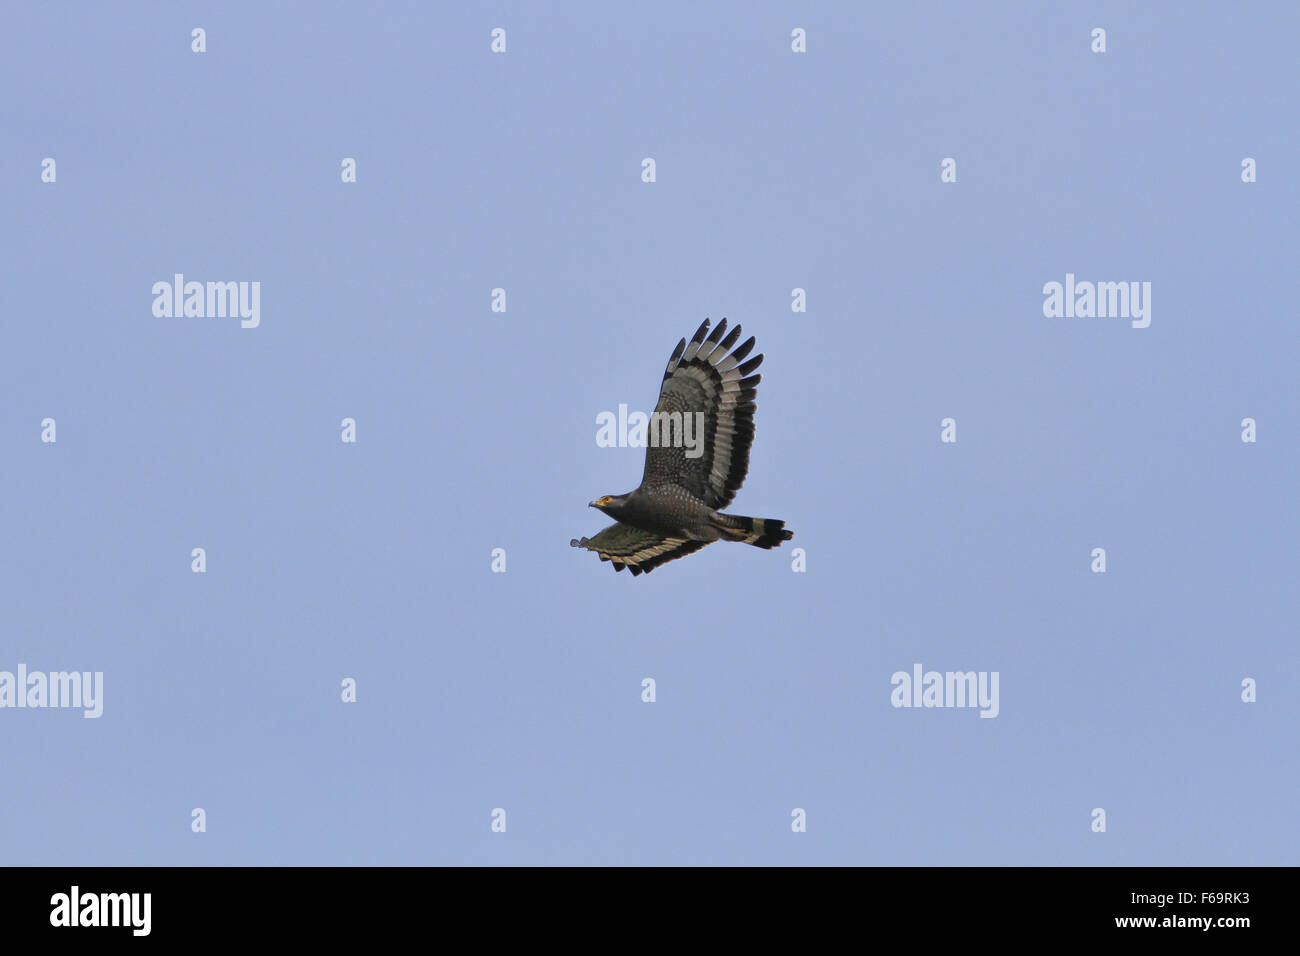 Crested Serpent Eagle In Flight On The Sky